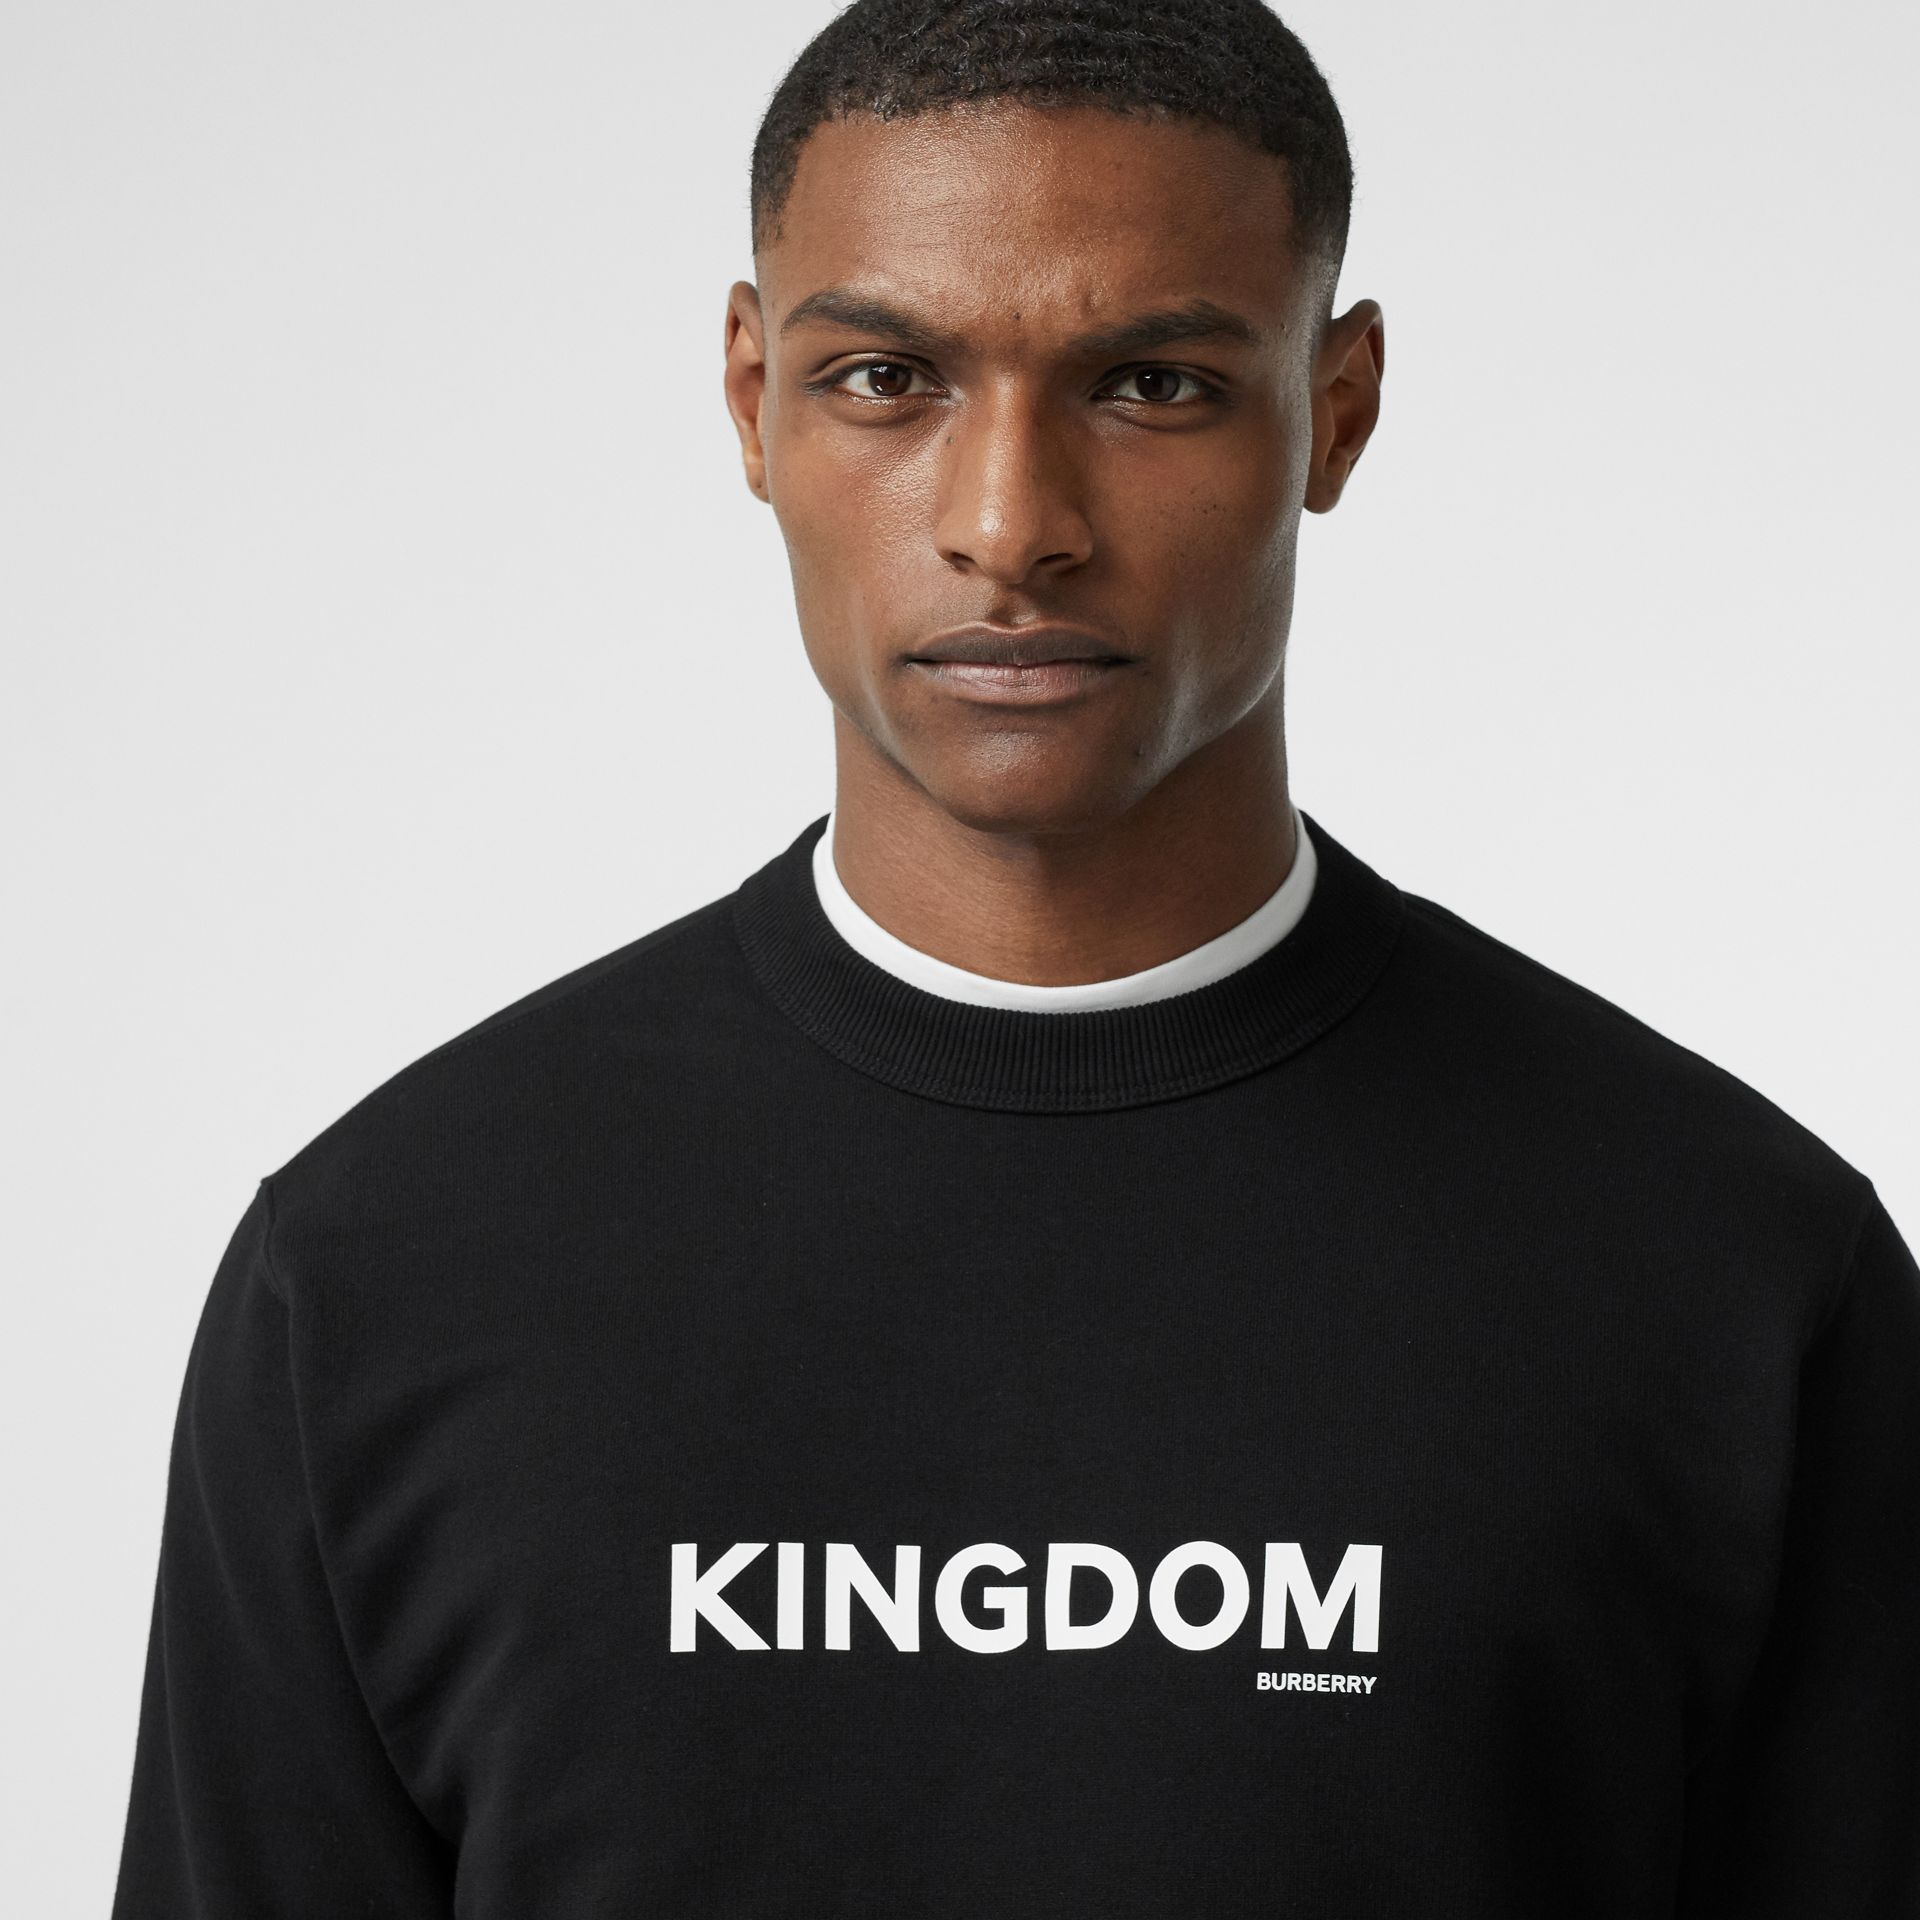 Kingdom Print Cotton Sweatshirt in Black - Men | Burberry - gallery image 1